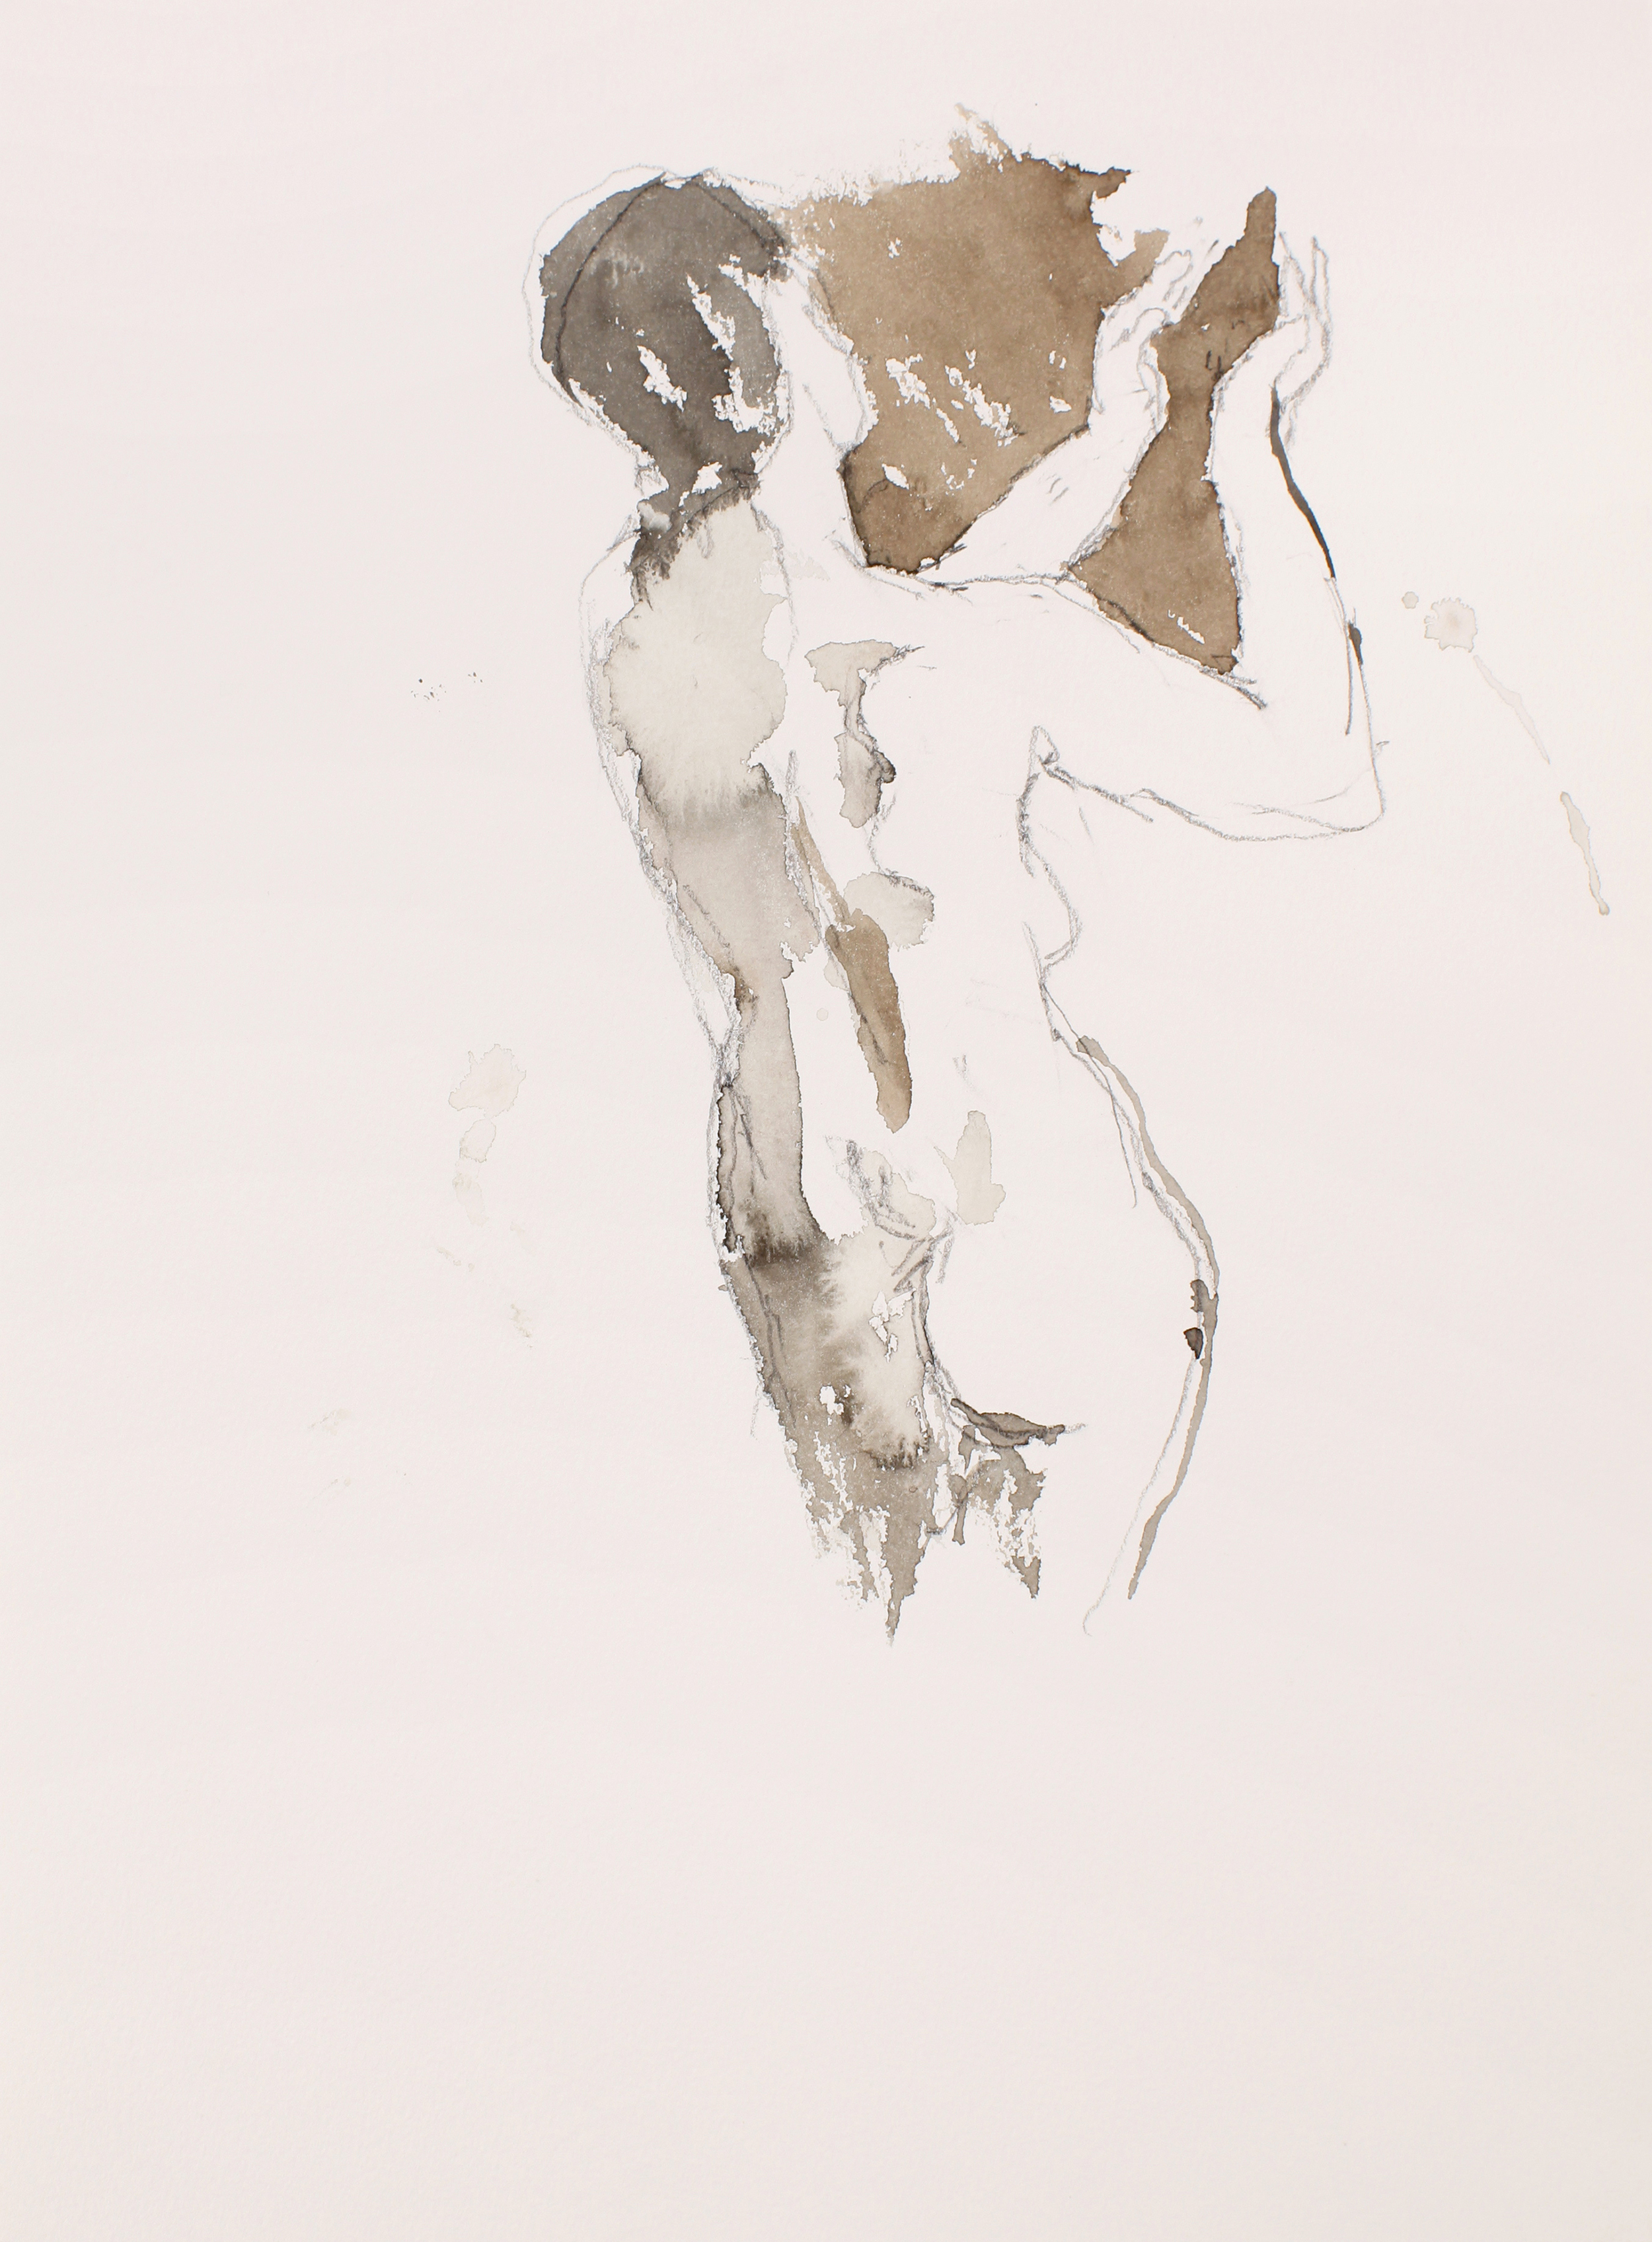 2004_Female_Nude_with_Raised_Arms_Study_For_Orpheous_watercolour_and_pencil_on_paper_15x11in_WPF238..jpg